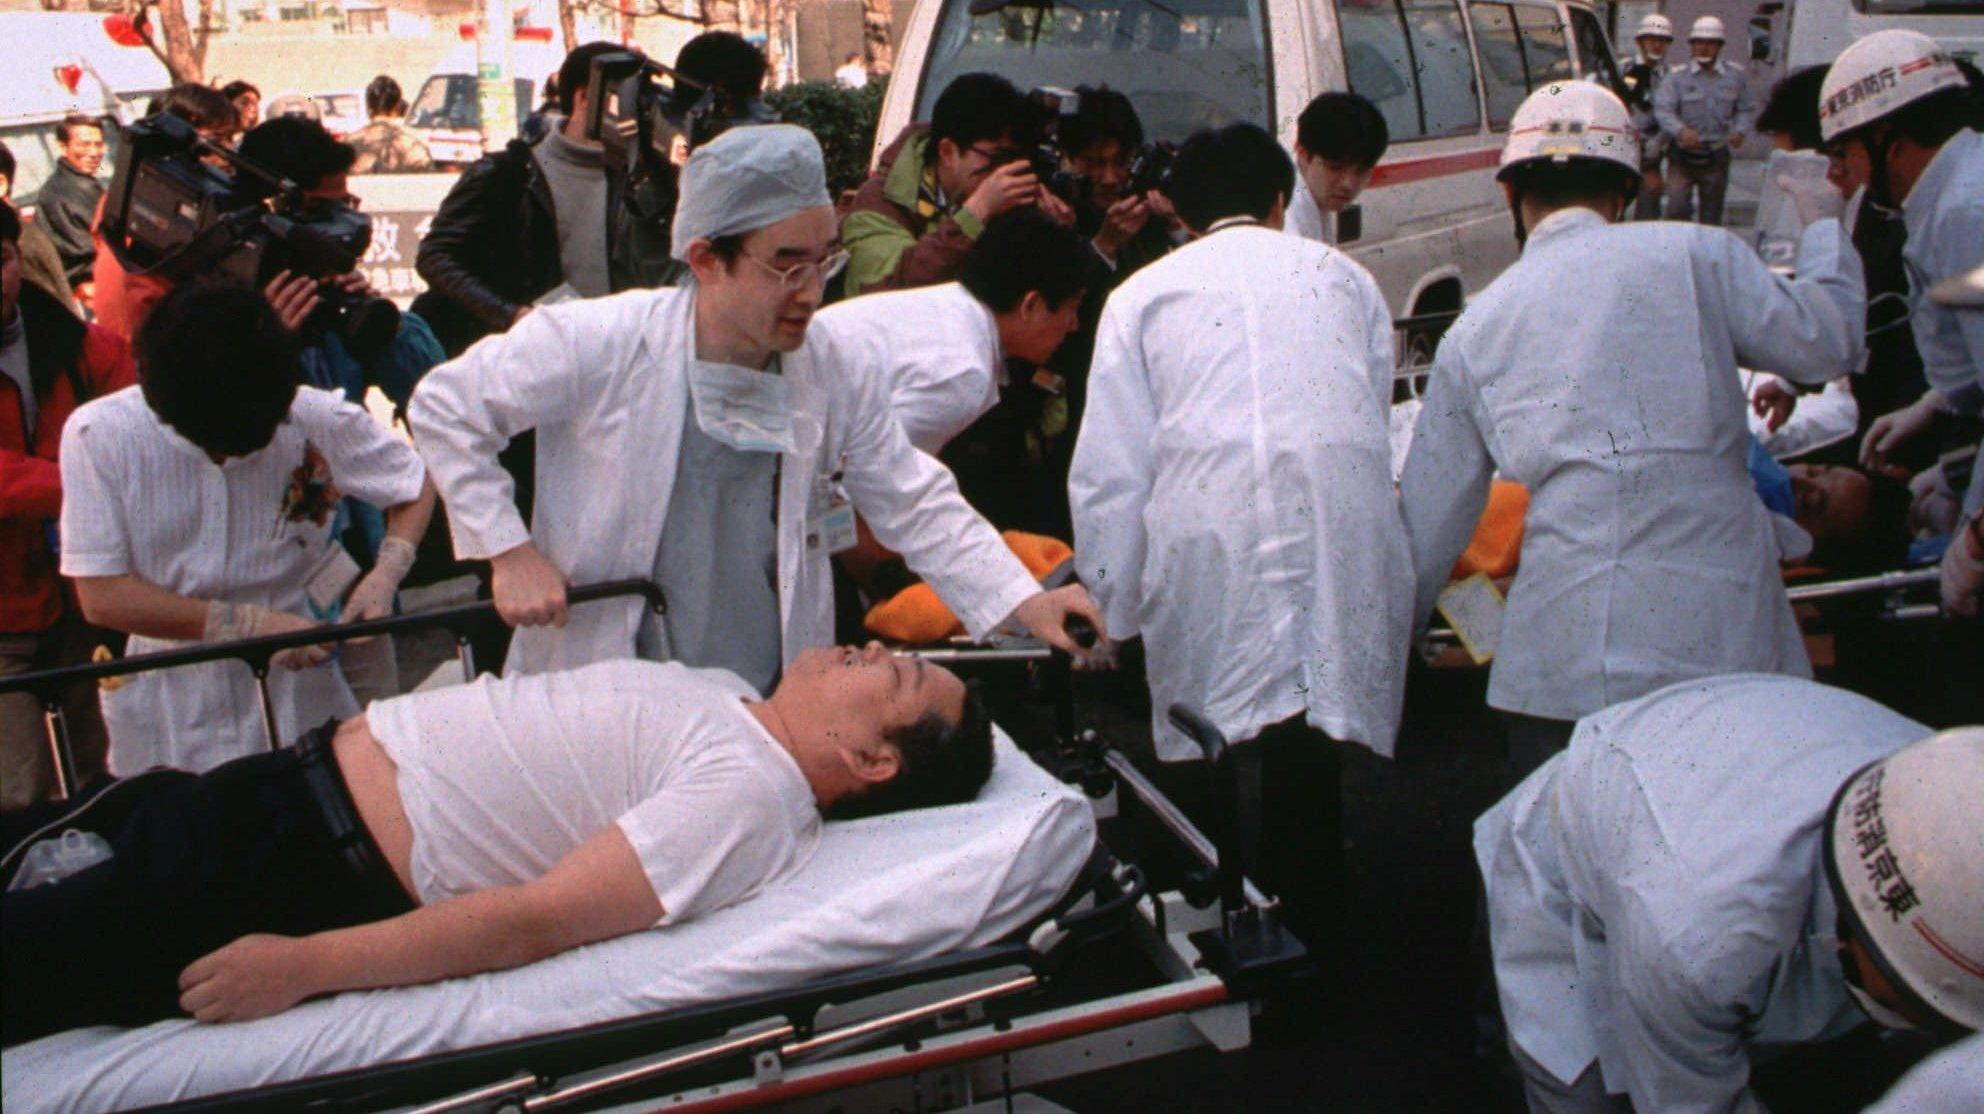 sarin gas The 1994 sarin gas incident in central japan that preceded the aum shinrikyo  cult's subway attacks in tokyo marked its 20th anniversary.